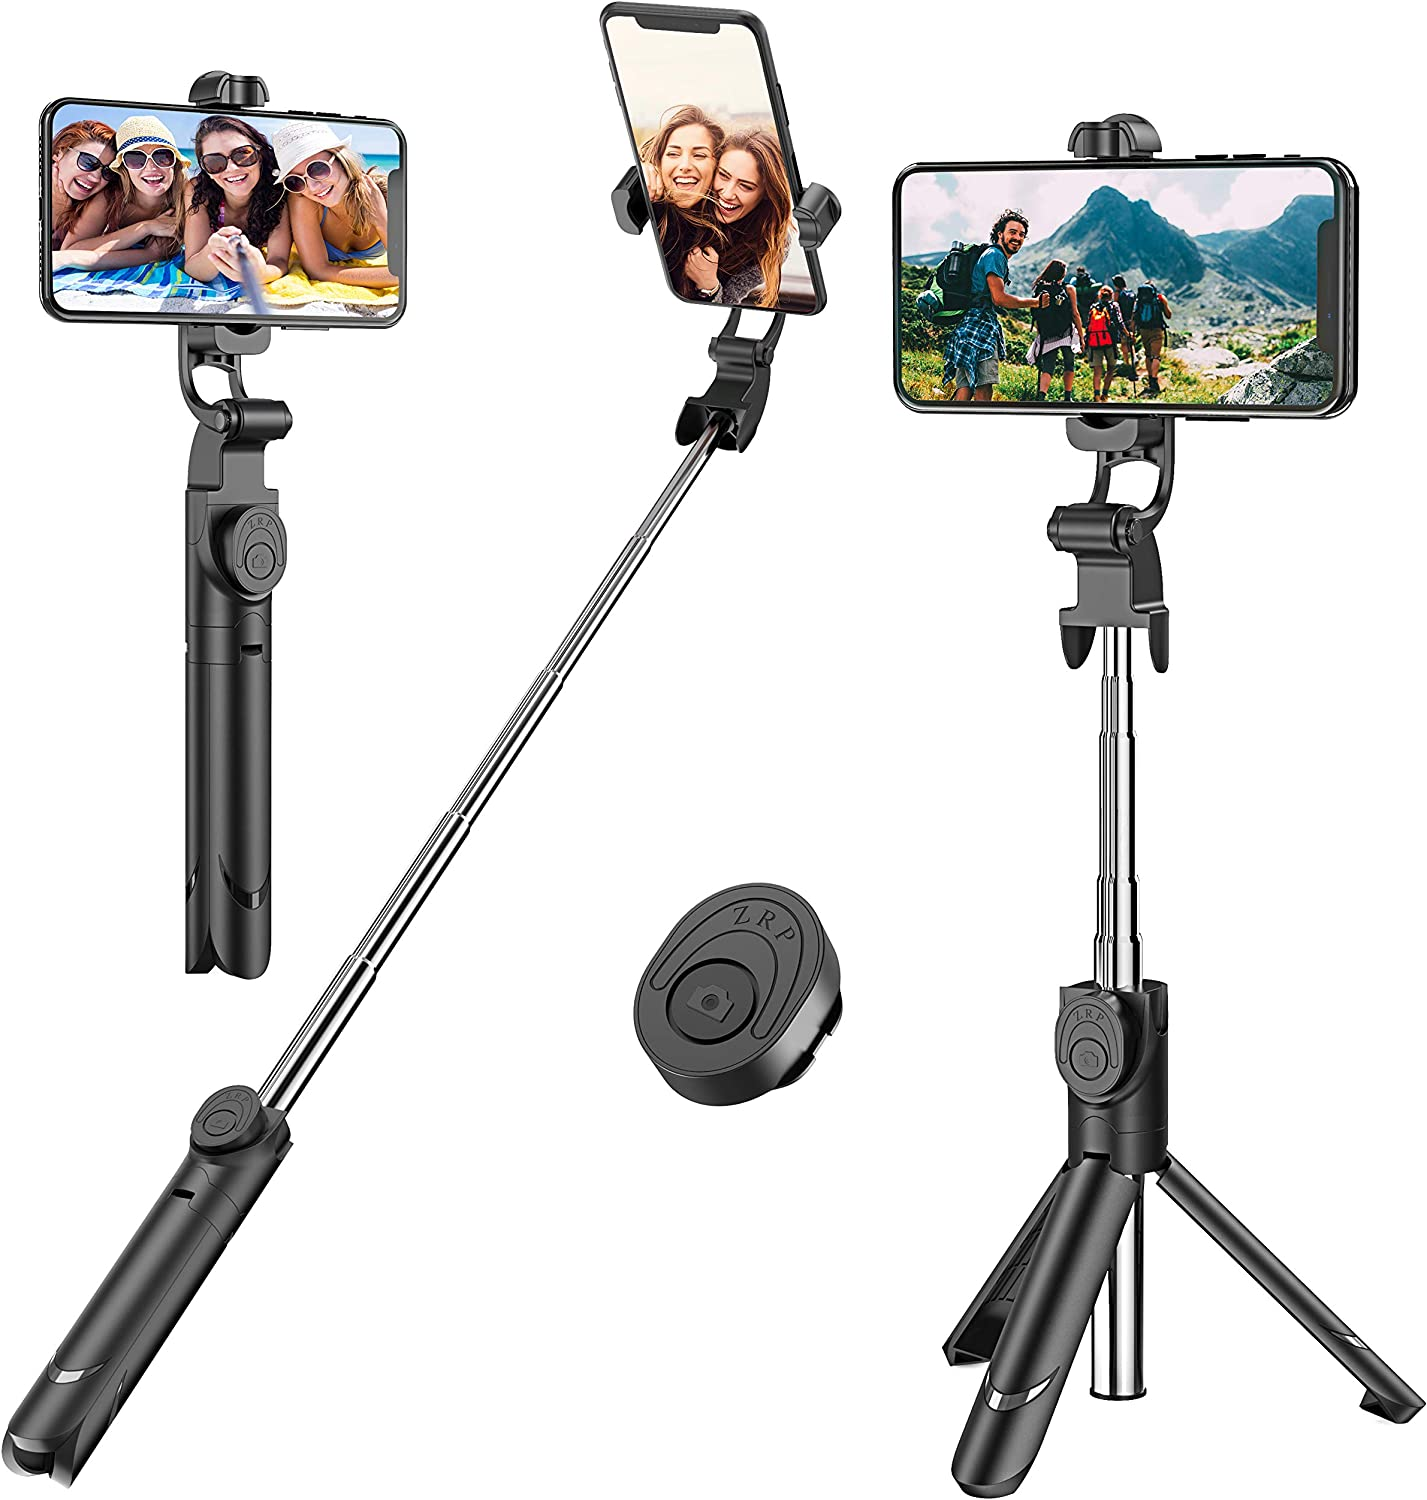 Black Selfie Stick Bluetooth Selfie Stick with Detachable Wireless Controller Multi-Function Retractable Tripod Multi-Angle Video Live Broadcasting Bracket with Fill Light Portable Rechargeable